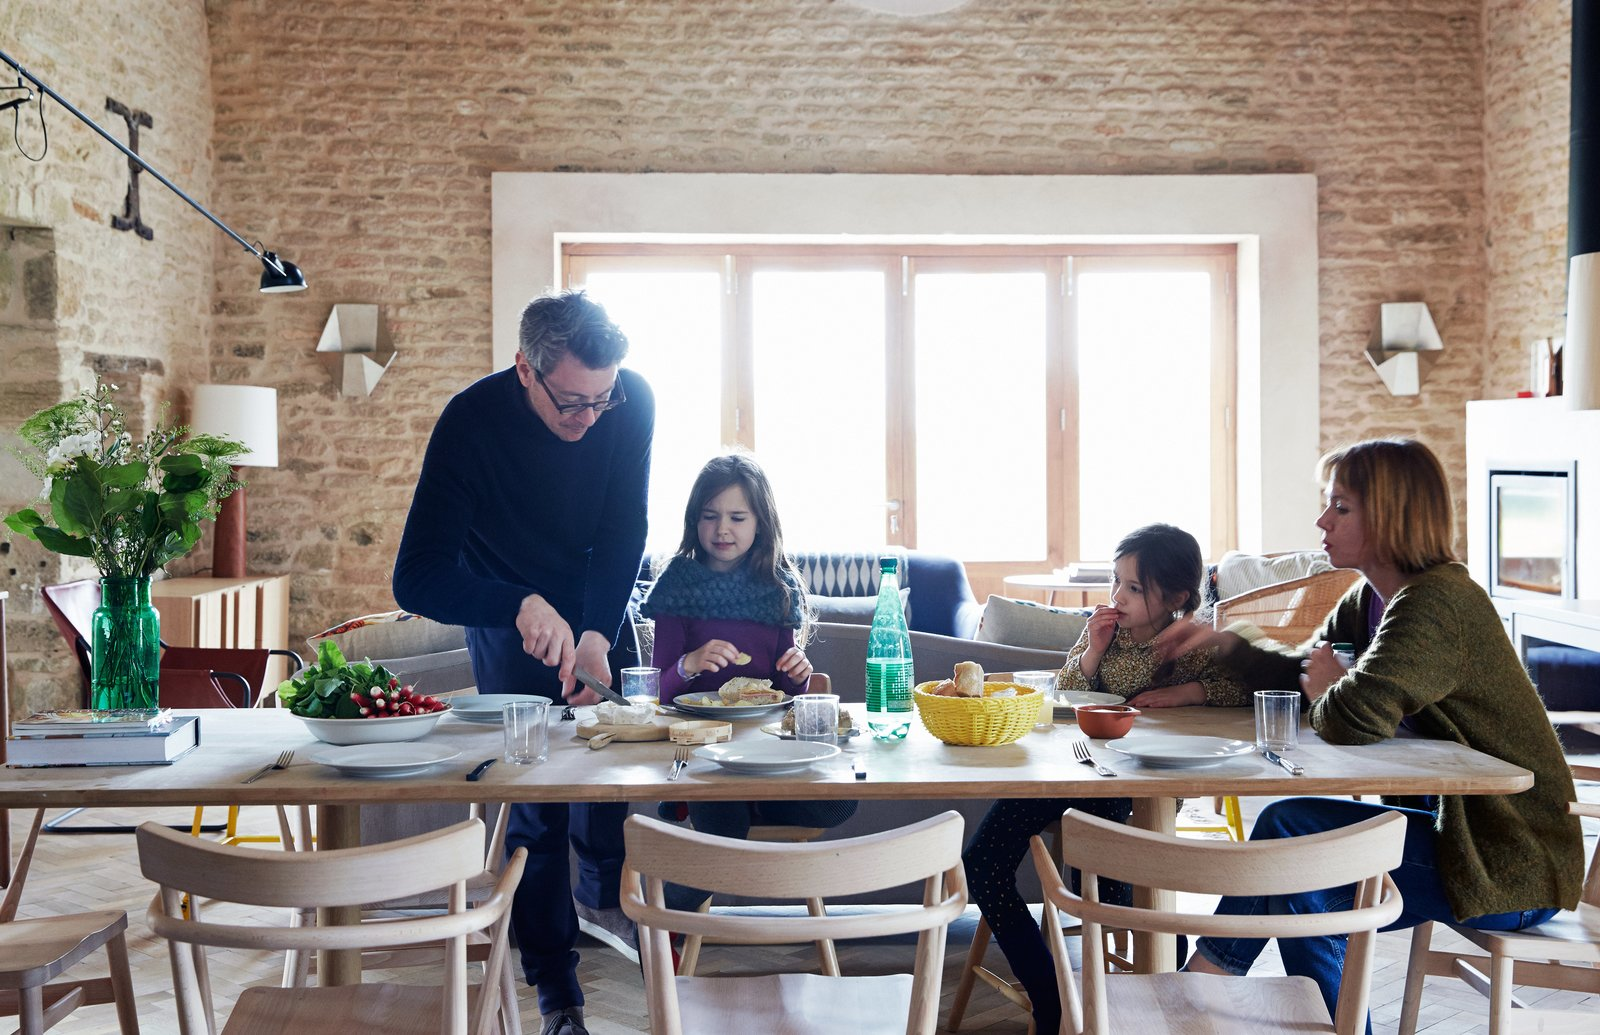 The family gathers at an early prototype of the Achilles table from the Pinch collection. Surrounding it are chairs that were designed by Russell and produced by Ercol for London's Holland Park School. The couple built the doors and windows themselves.